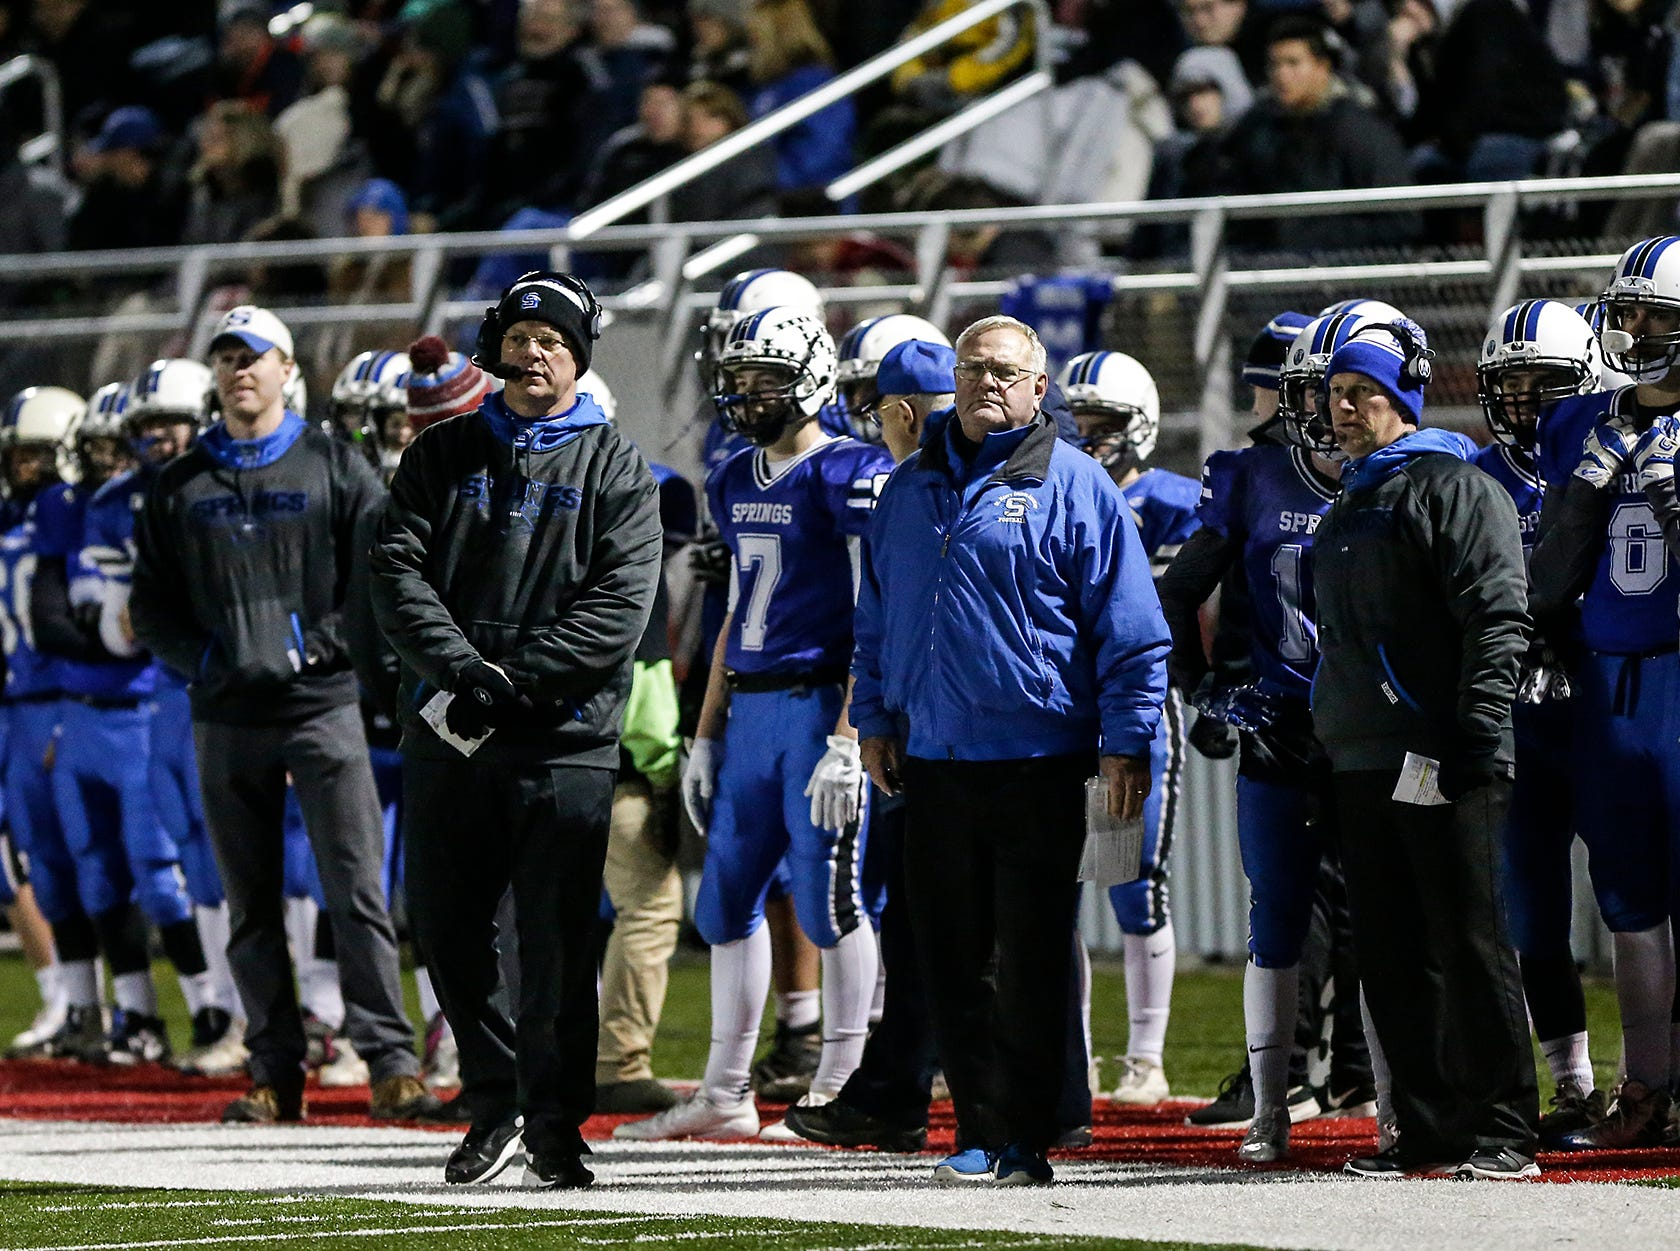 St. Mary's Springs Academy football's players and coaches look on during their WIAA division 5 level 3 playoff game against Amherst High School Friday, November 2, 2018 played in Lomira, Wisconsin. Springs won the game 12-0. Doug Raflik/USA TODAY NETWORK-Wisconsin